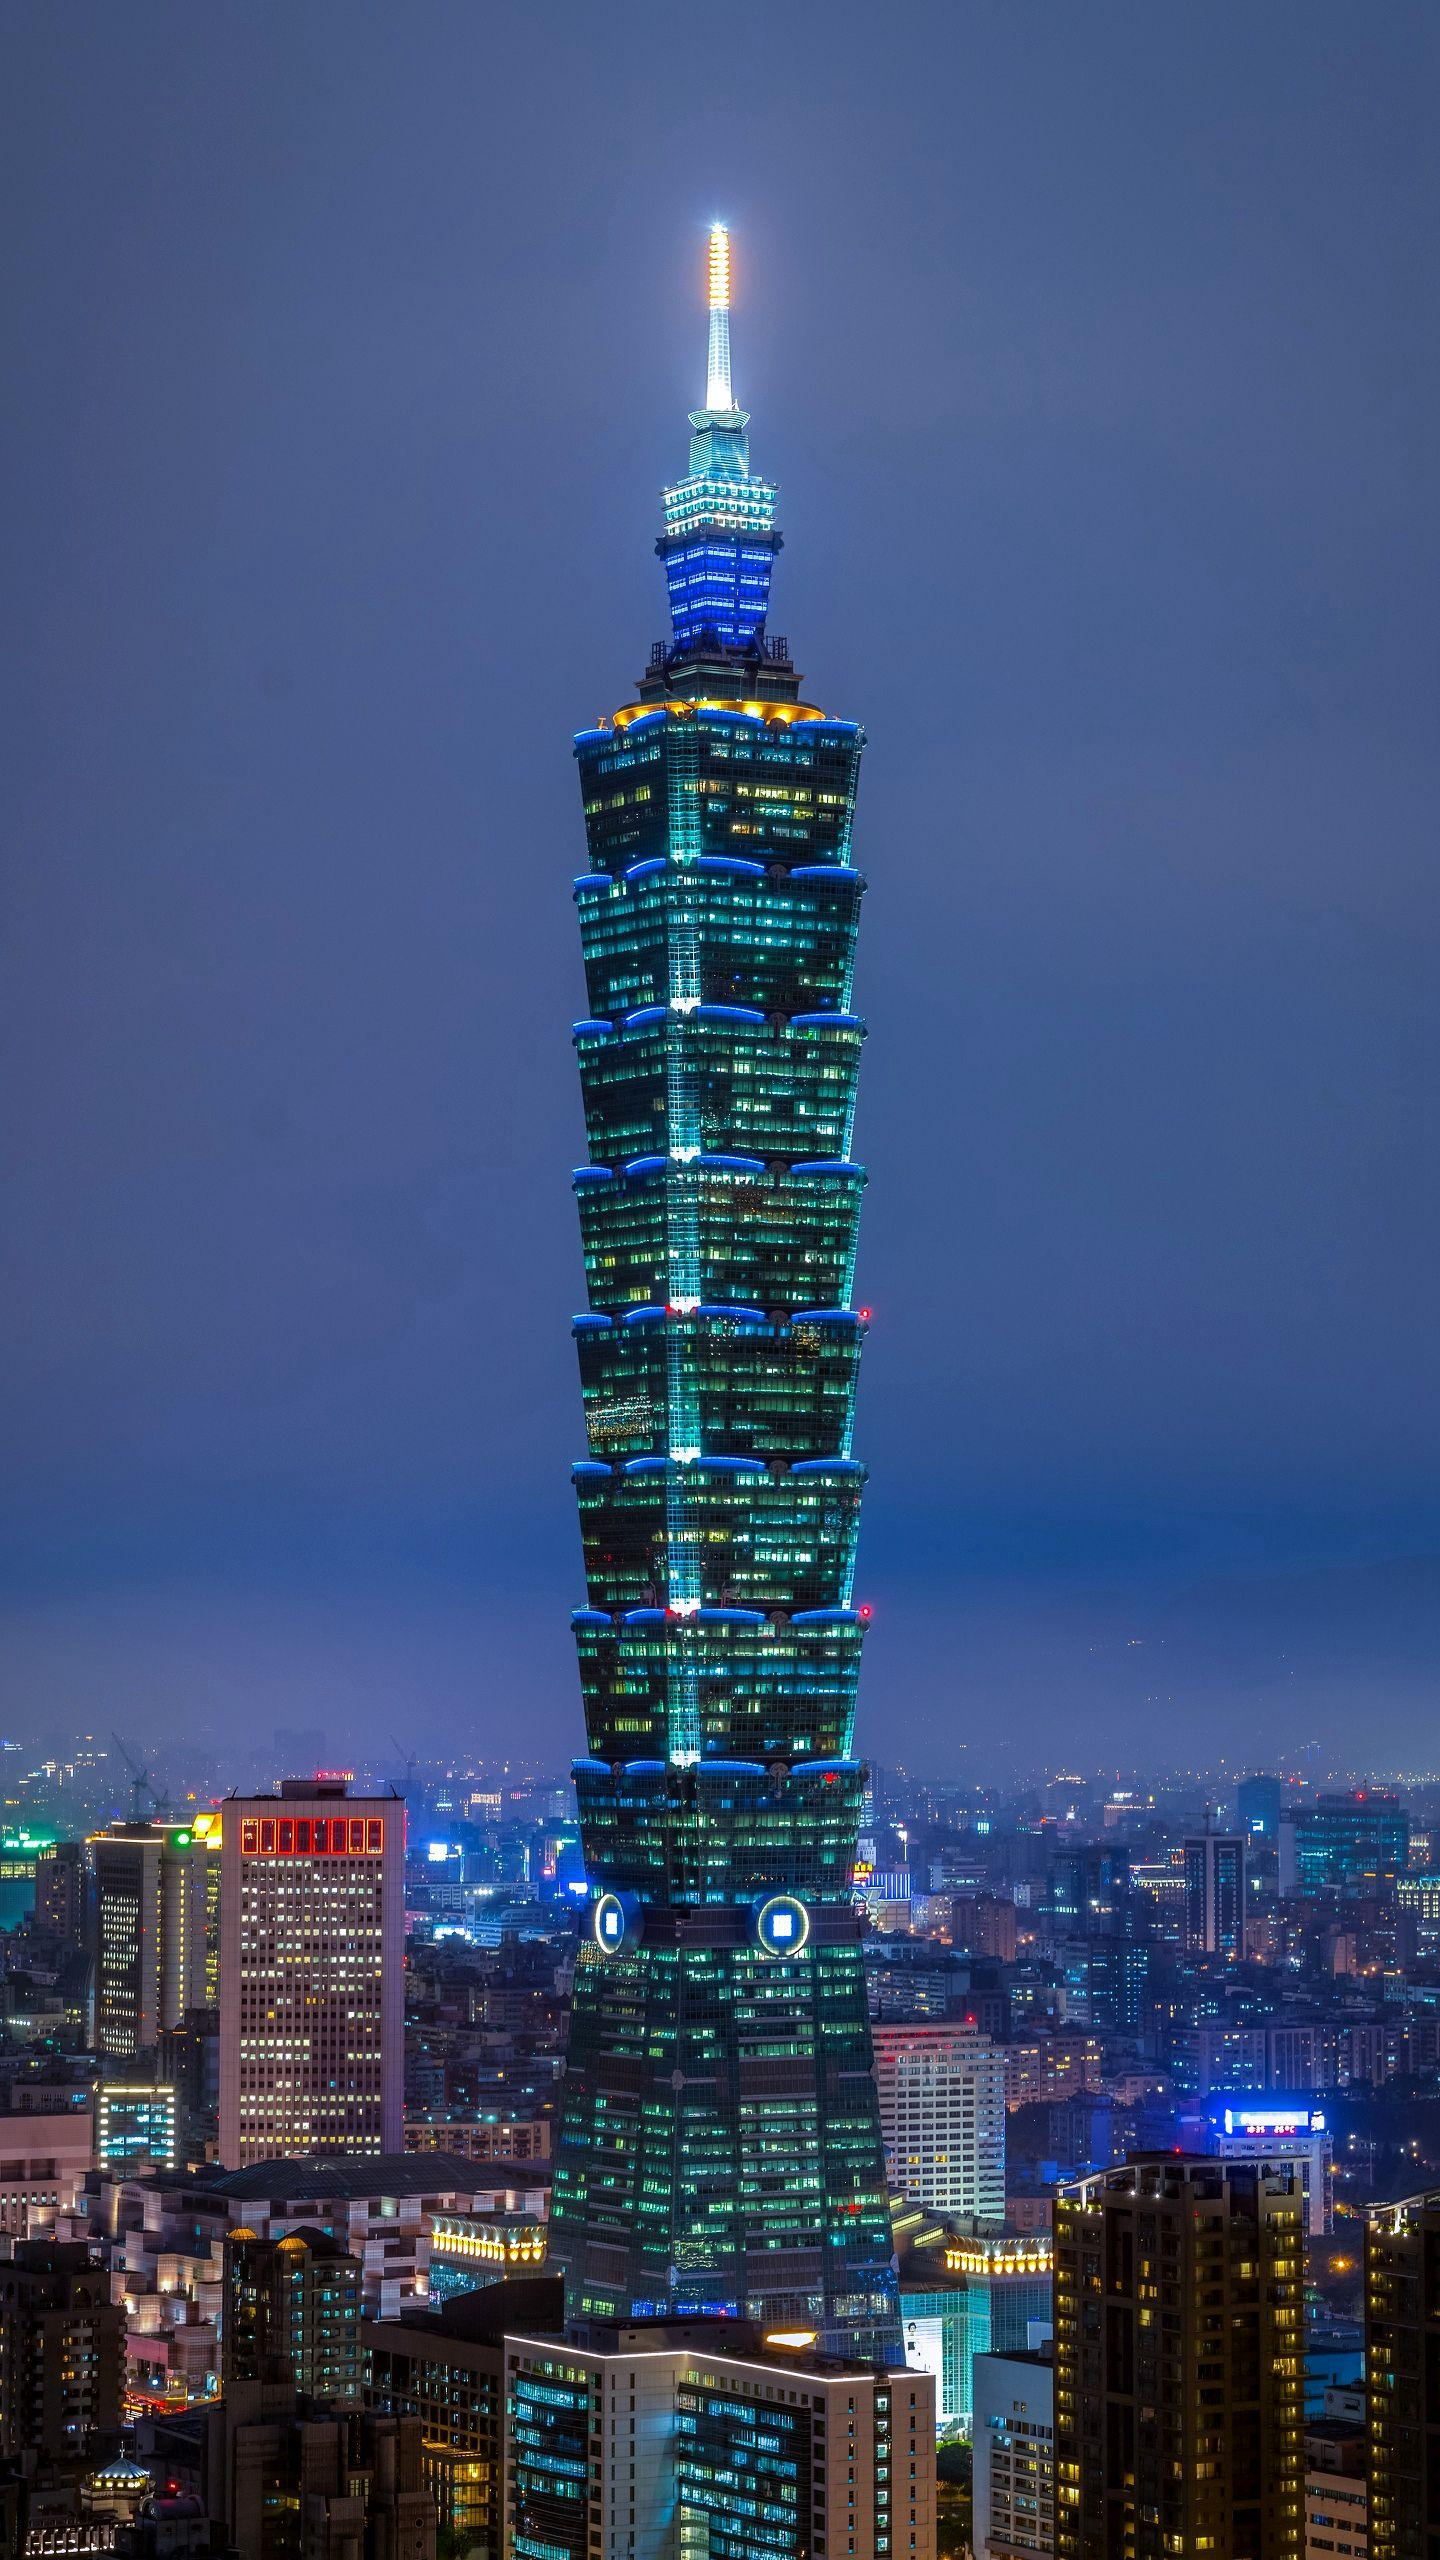 Taipei 101. Once the world's tallest Taipei 101 building, it has the world's fastest indoor elevator, which can climb 1010 meters in one minute.